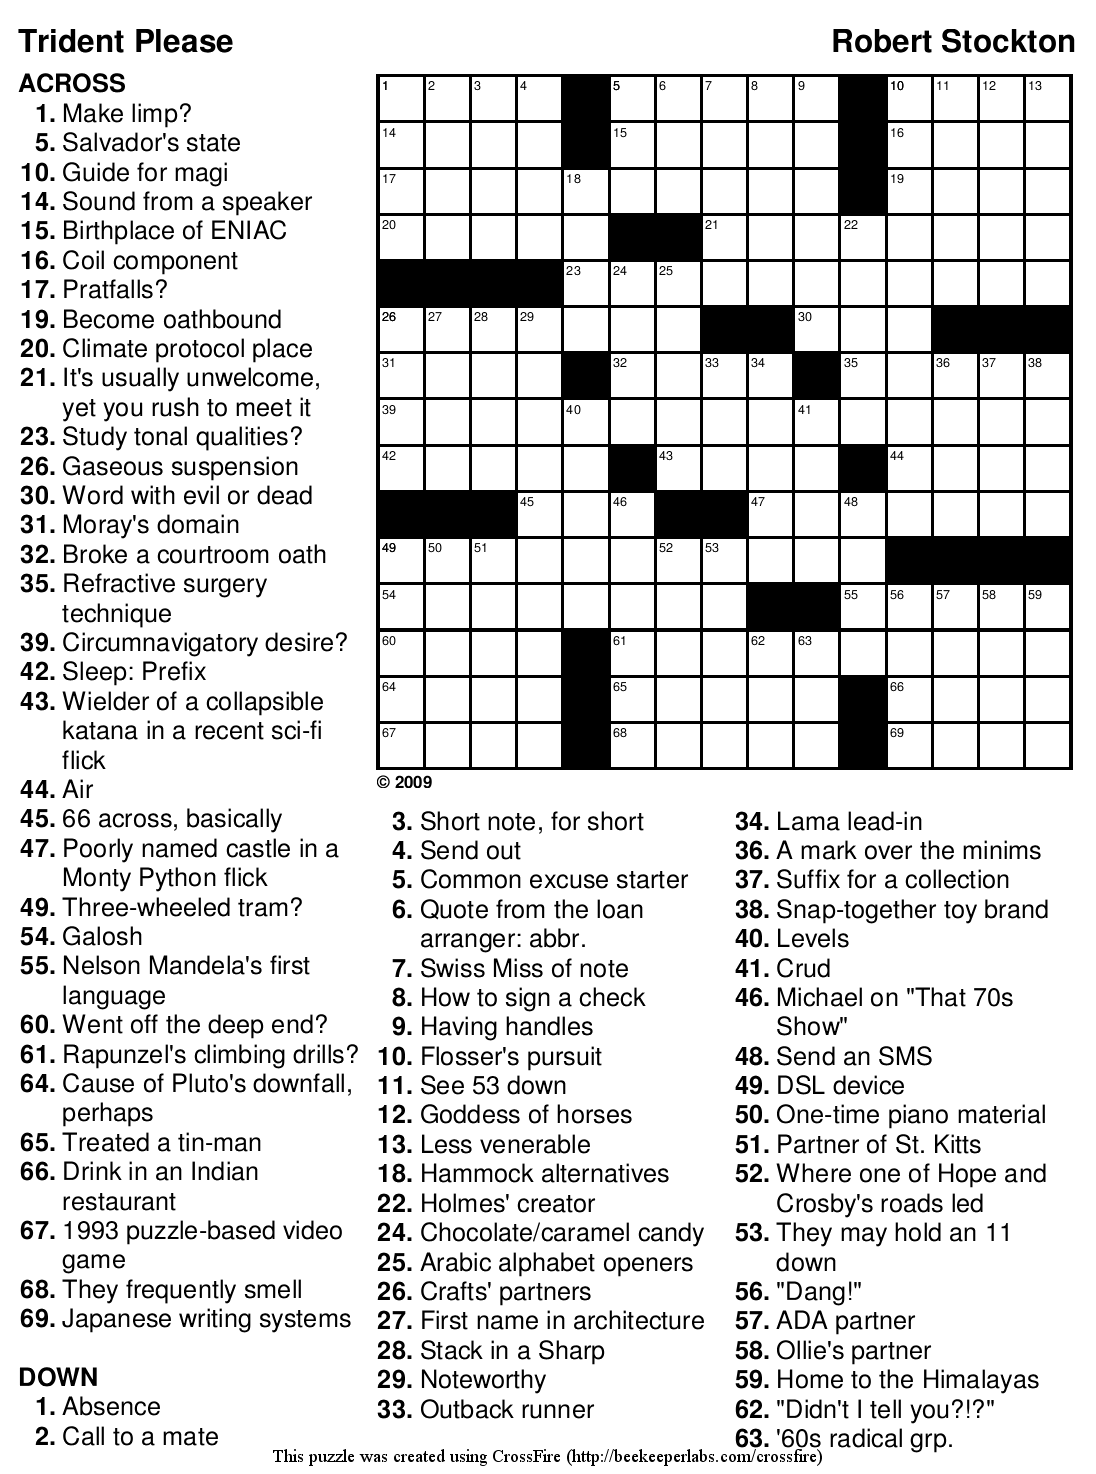 Free Printable Pop Culture Crossword Puzzles